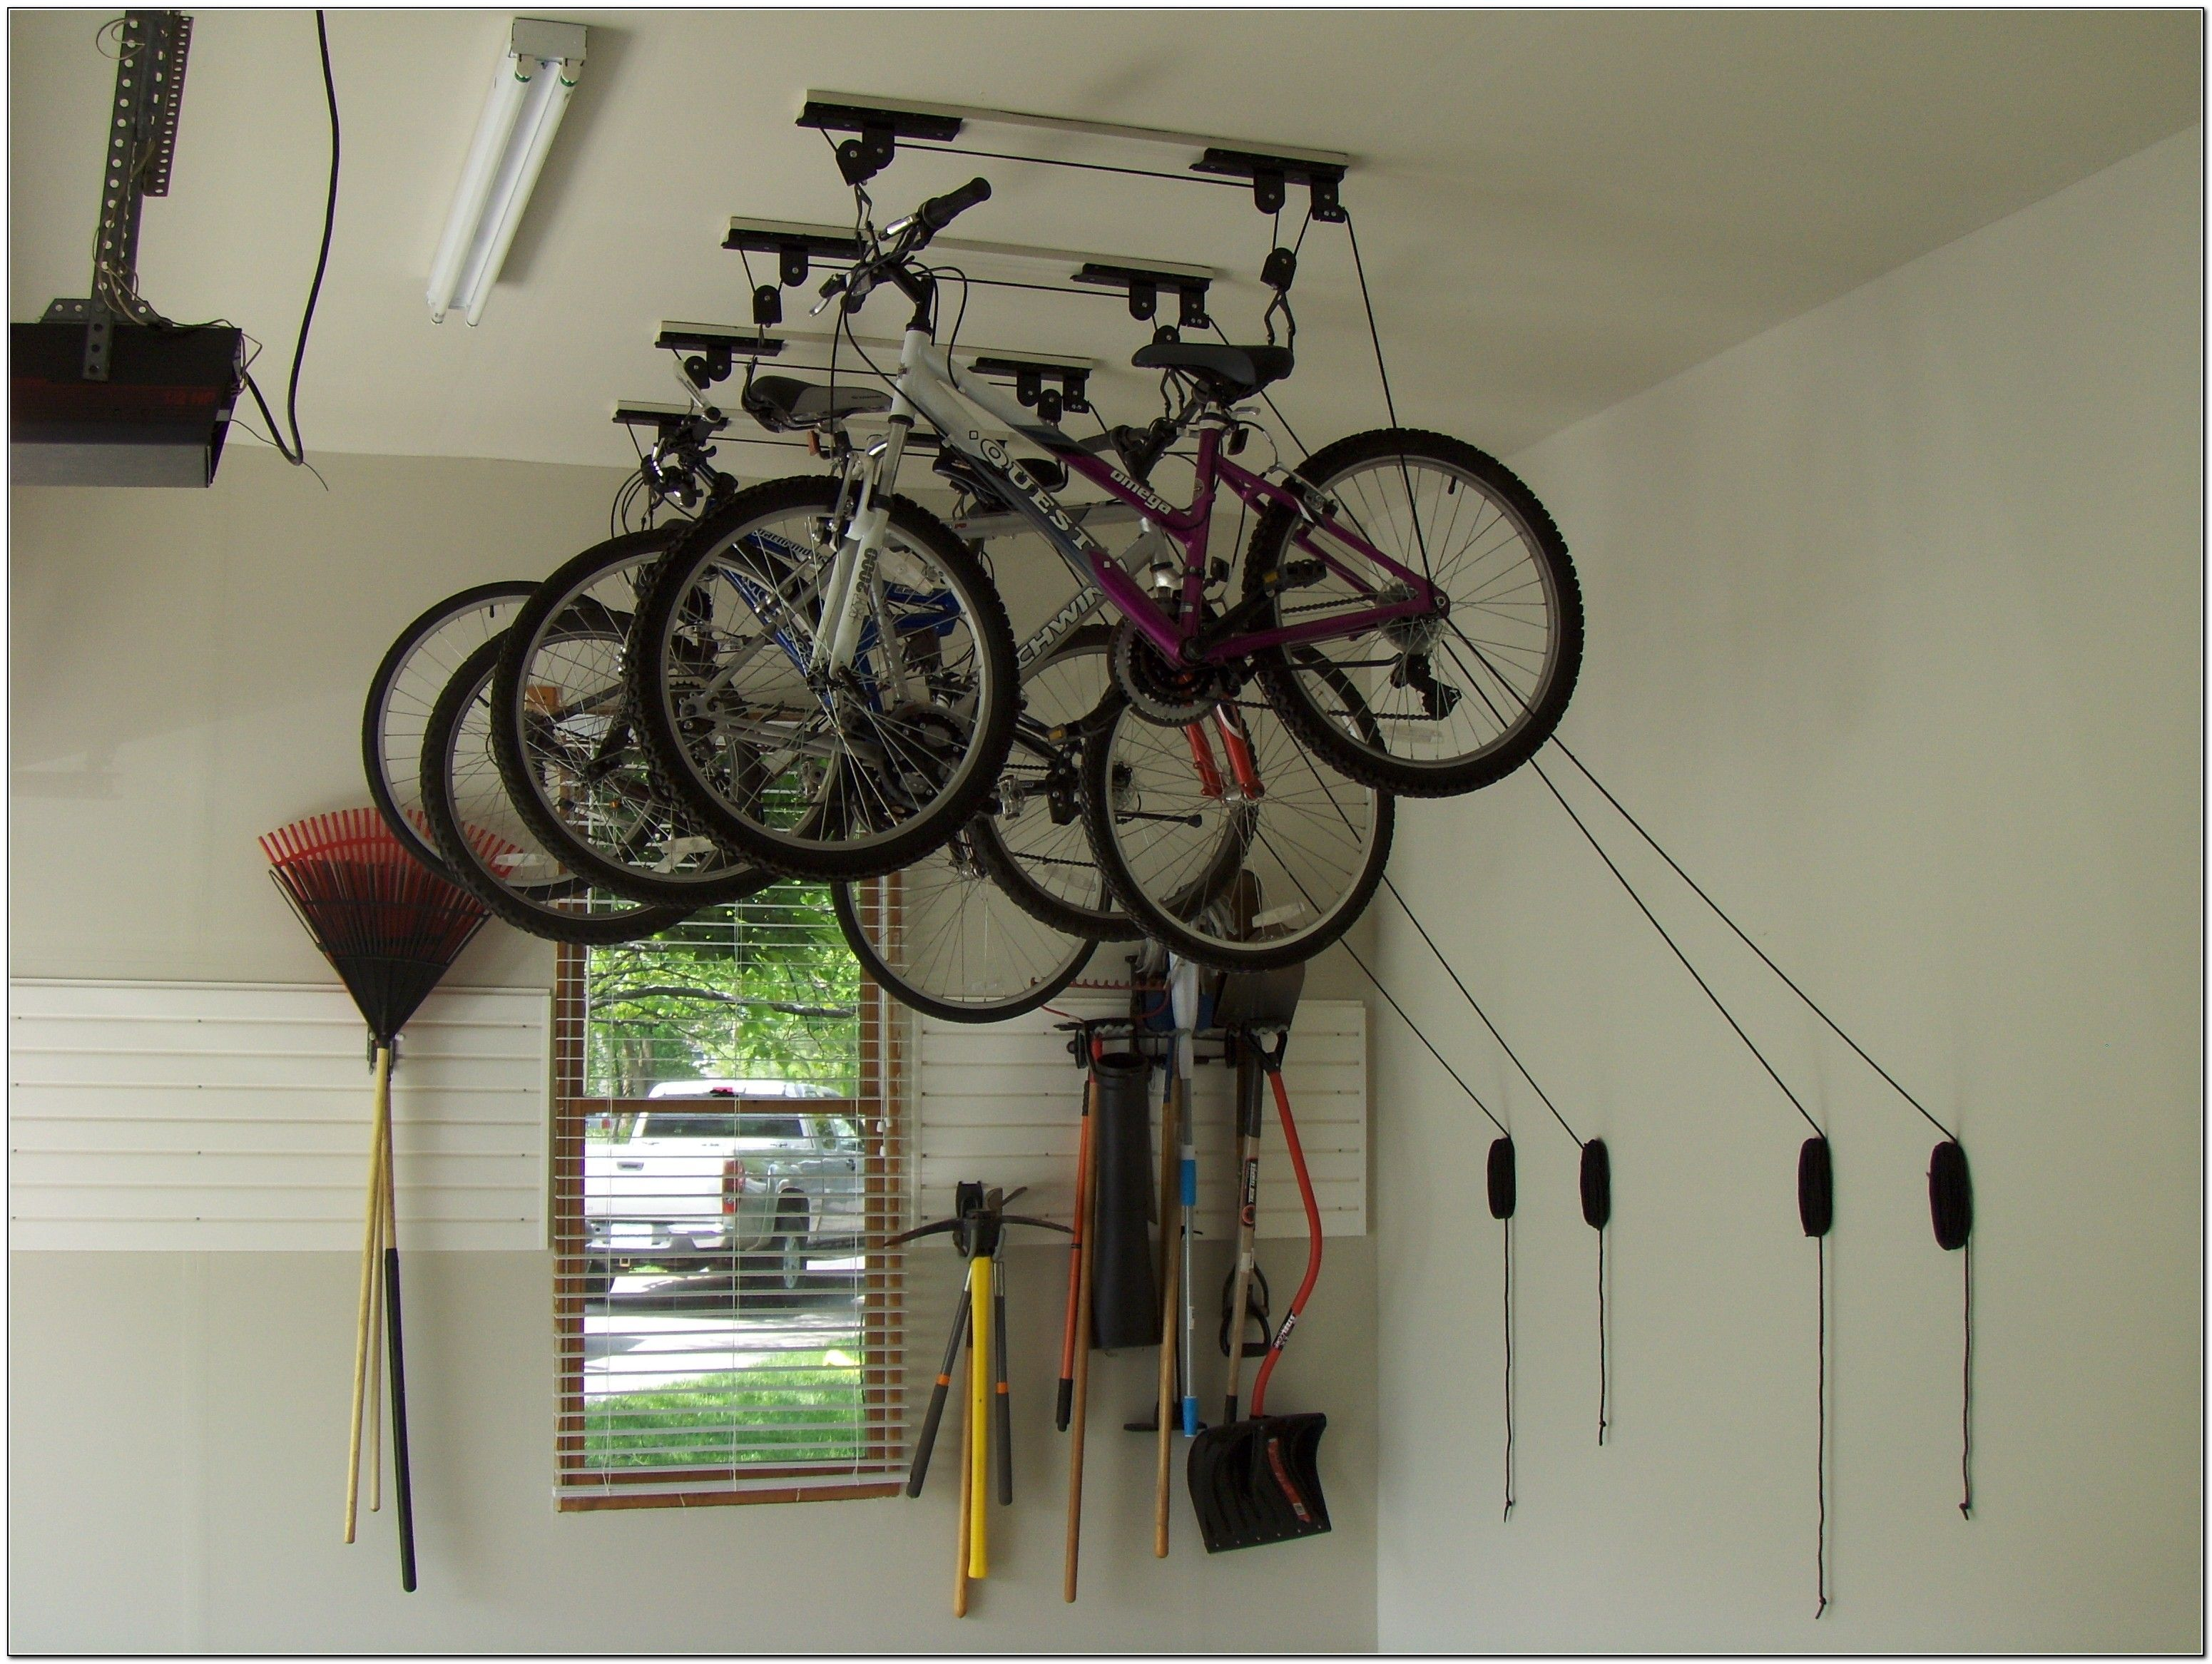 mount hoist cloud bicycles ceiling bike those reviews stumps lift ceilings the to